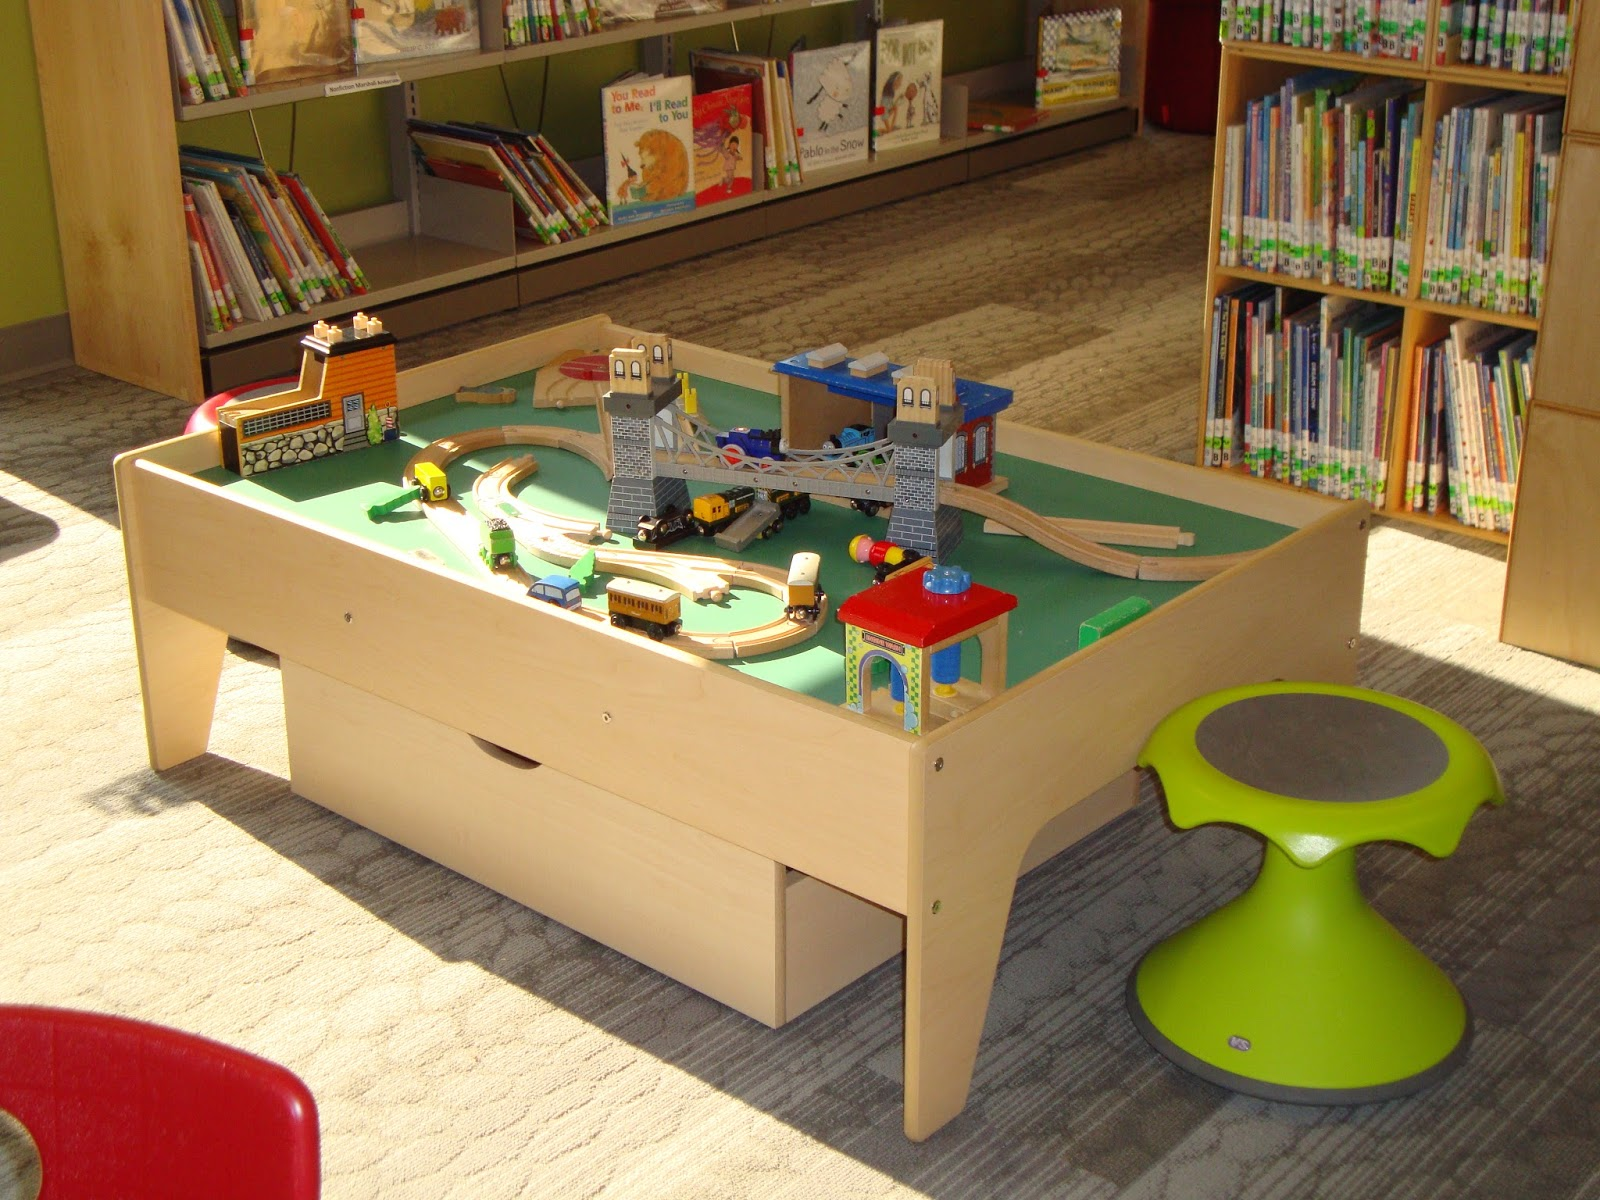 ... Library Train Table Donated By The Friends Of Tolland Public Library?  We Have A Wonderful New Family Reading Area And Play Space In The Childrenu0027s  Room; ...